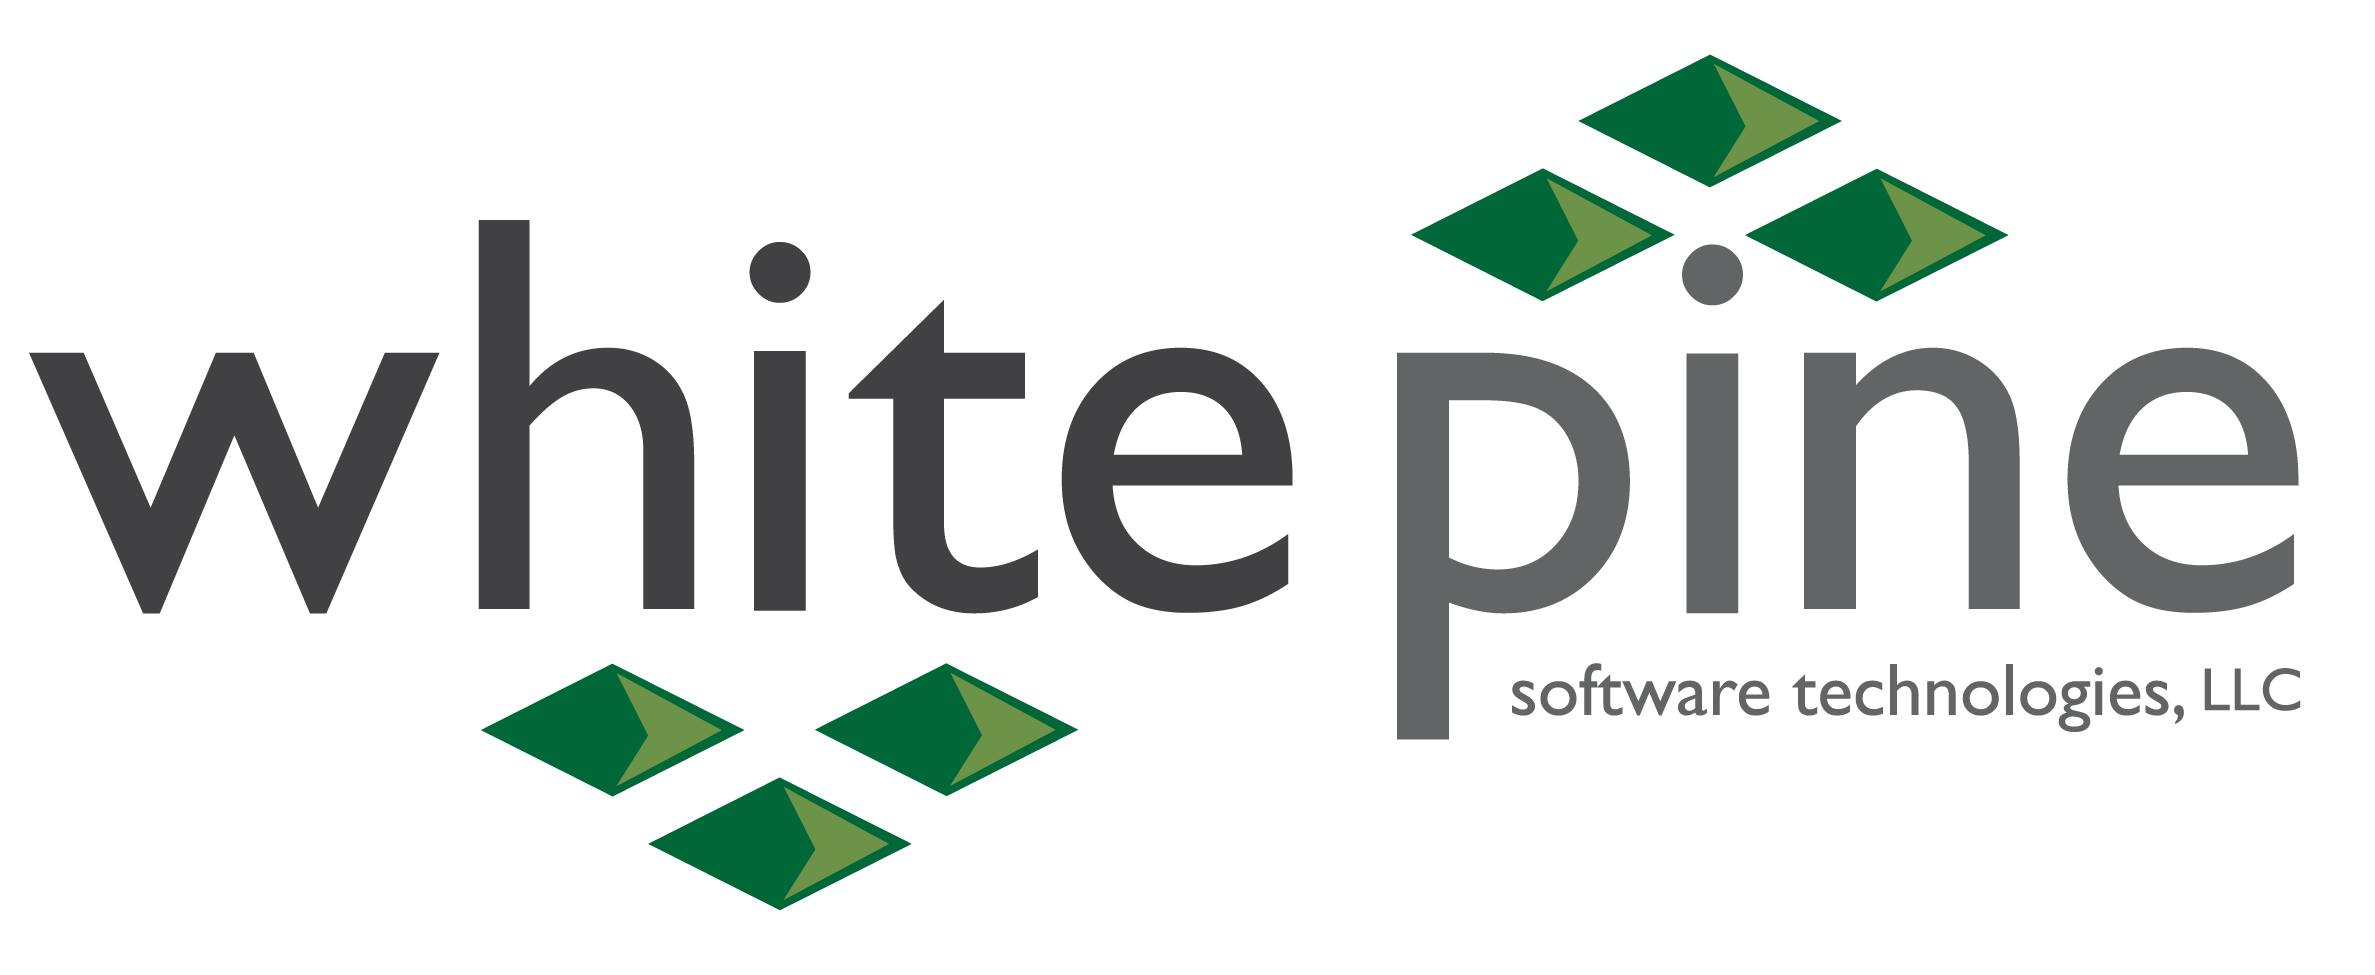 White Pine Software Technologies